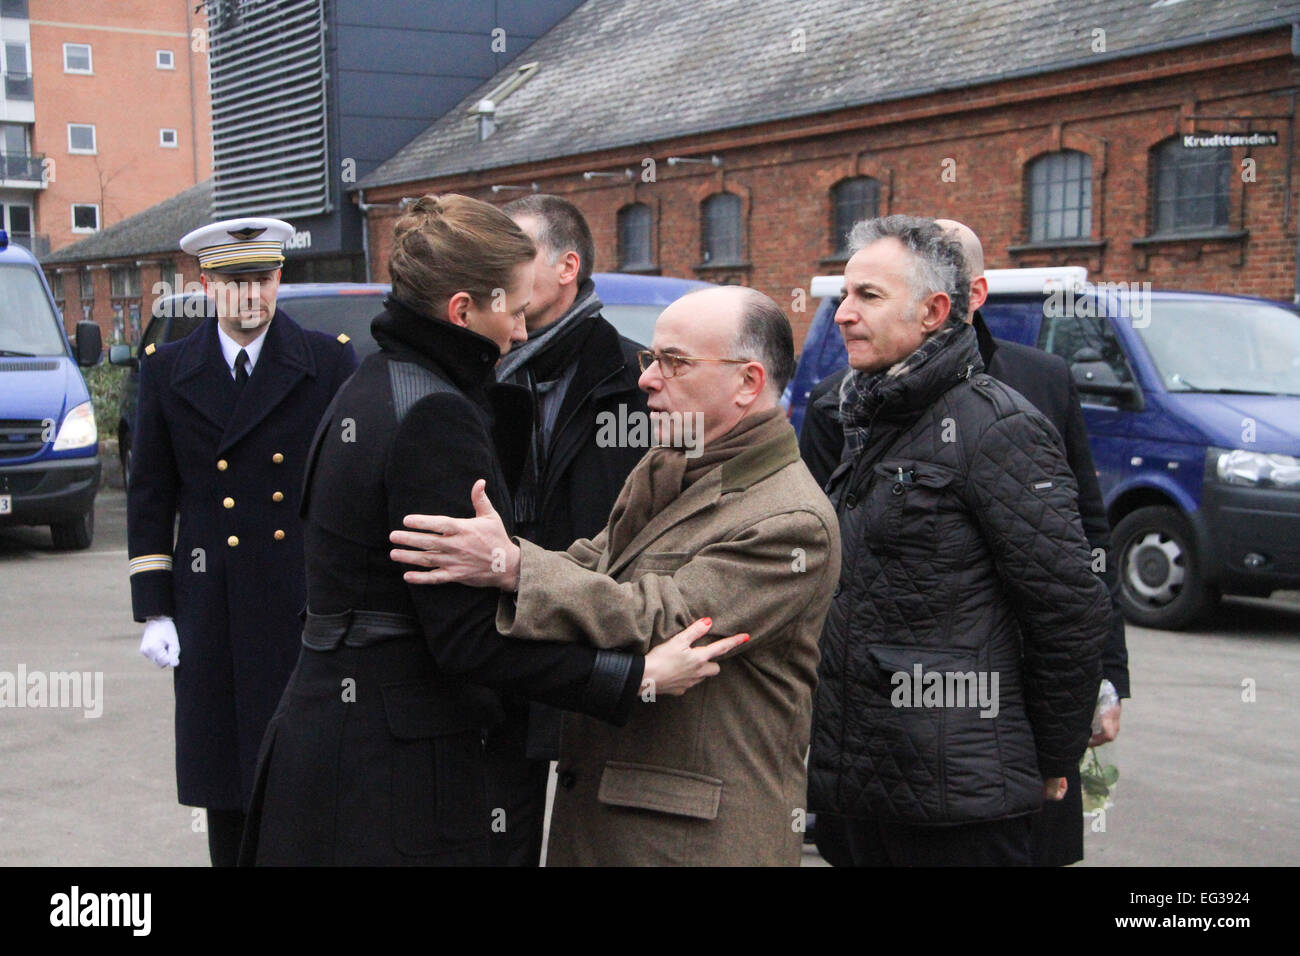 (150215) -- COPENHAGEN, Feb. 15, 2015 (Xinhua) -- Danish Minister of Justice Mette Frederiksen (L front) meets with - Stock Image